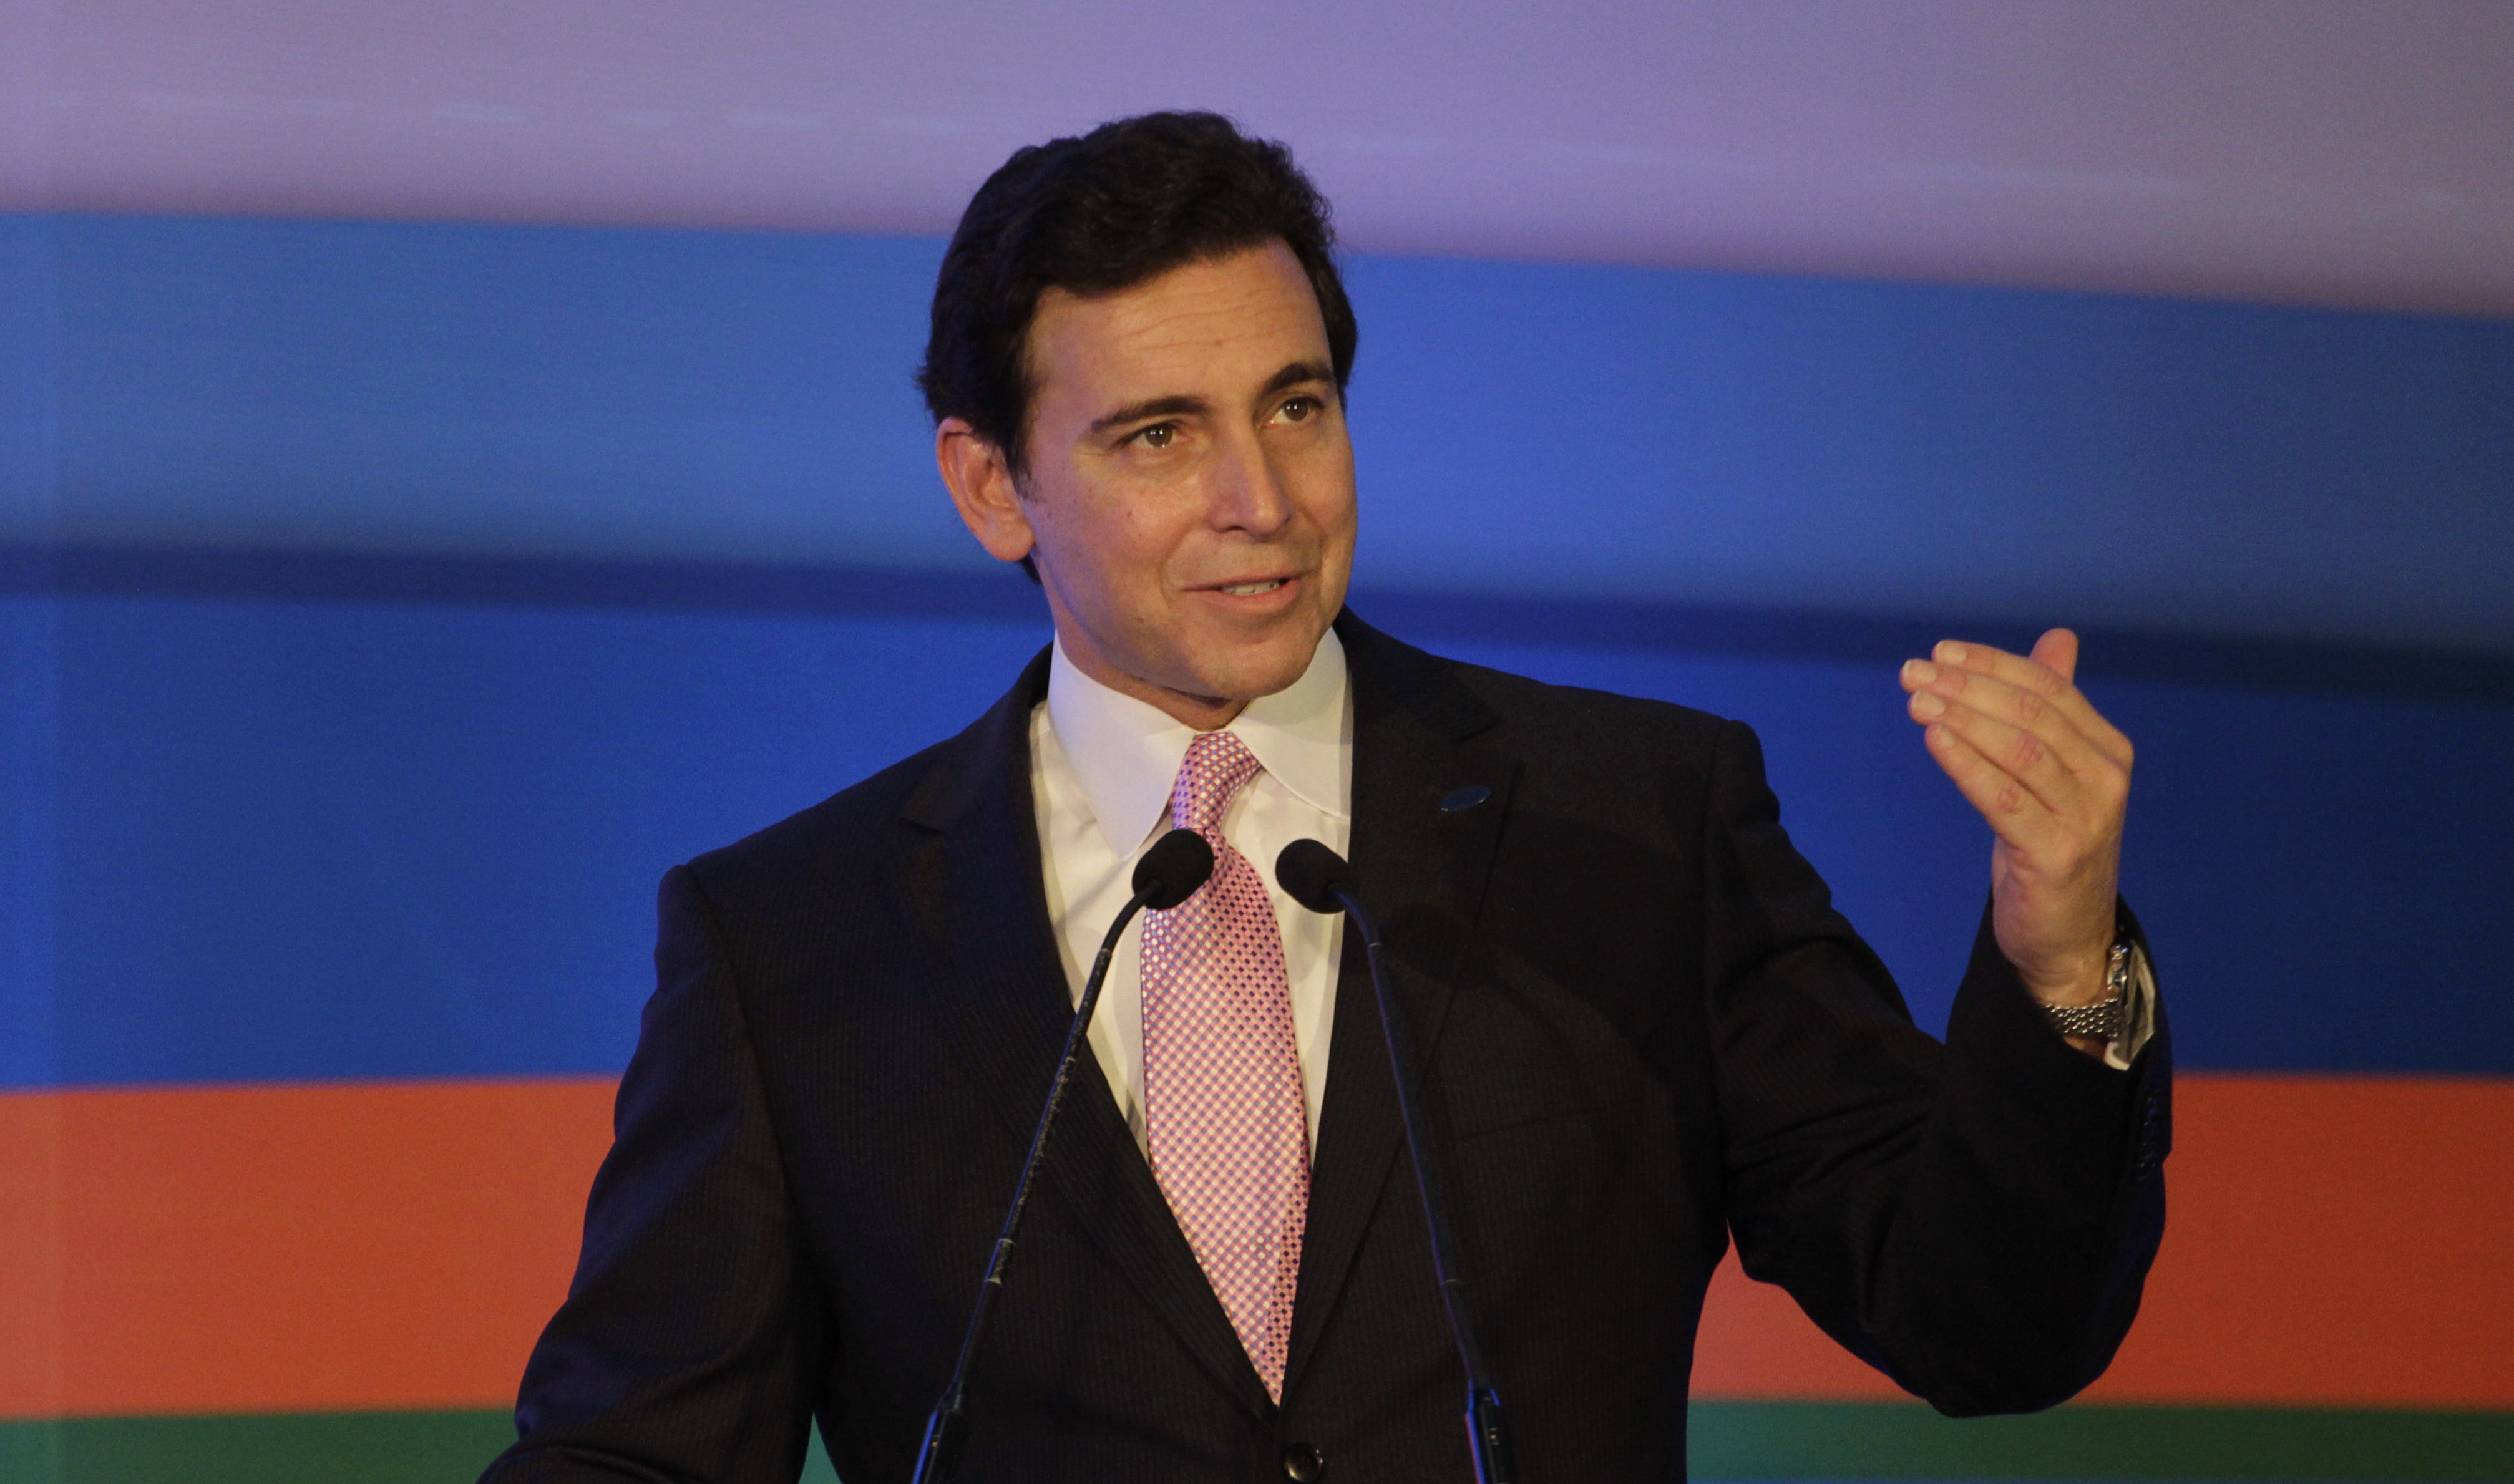 Ford President and CEO Mark Fields speaks at Ford's manufacturing facility and engineering plant in Sanand, India on March 26, 2015.